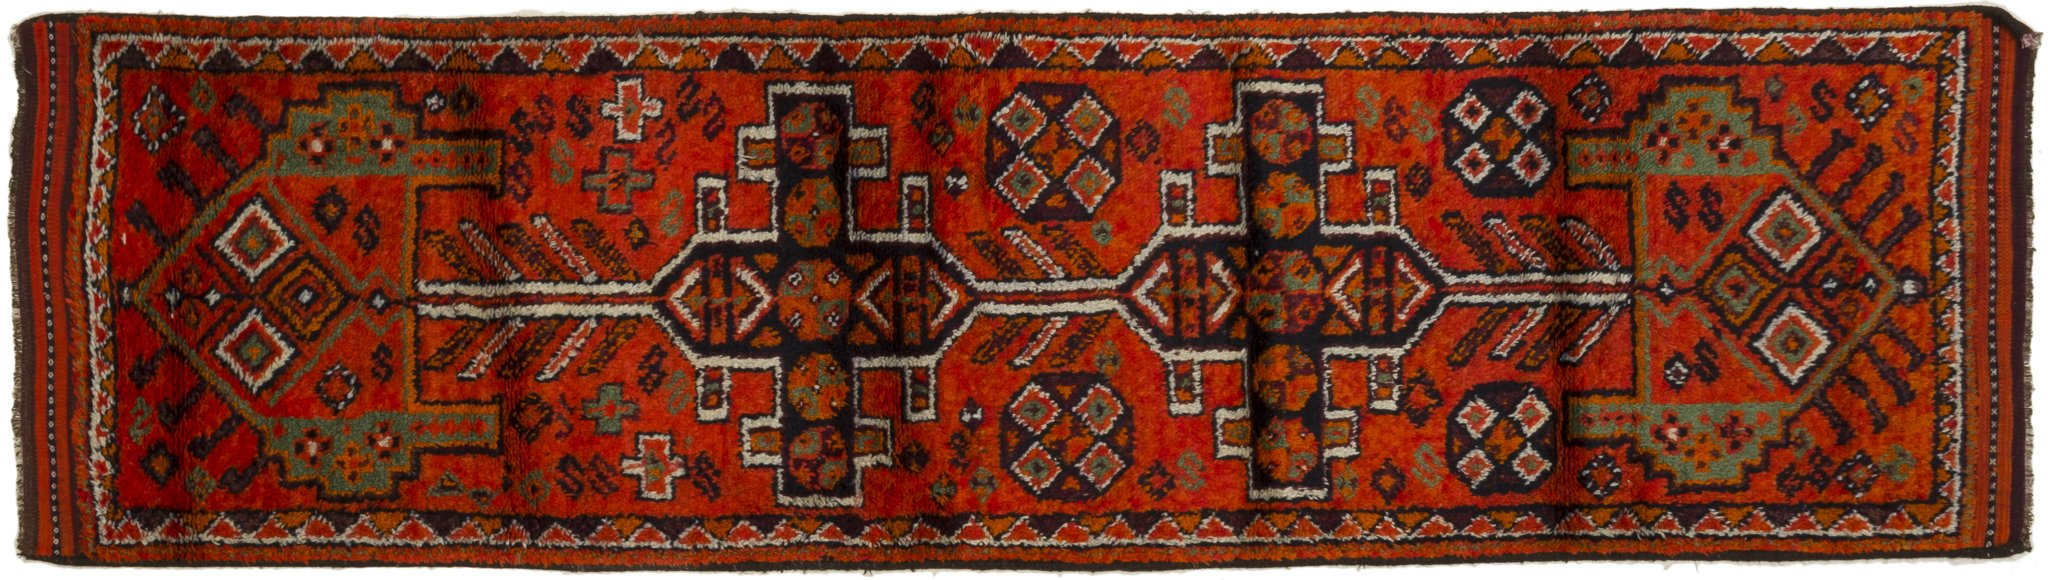 Vintage Turkish Runner Rug Annachiara